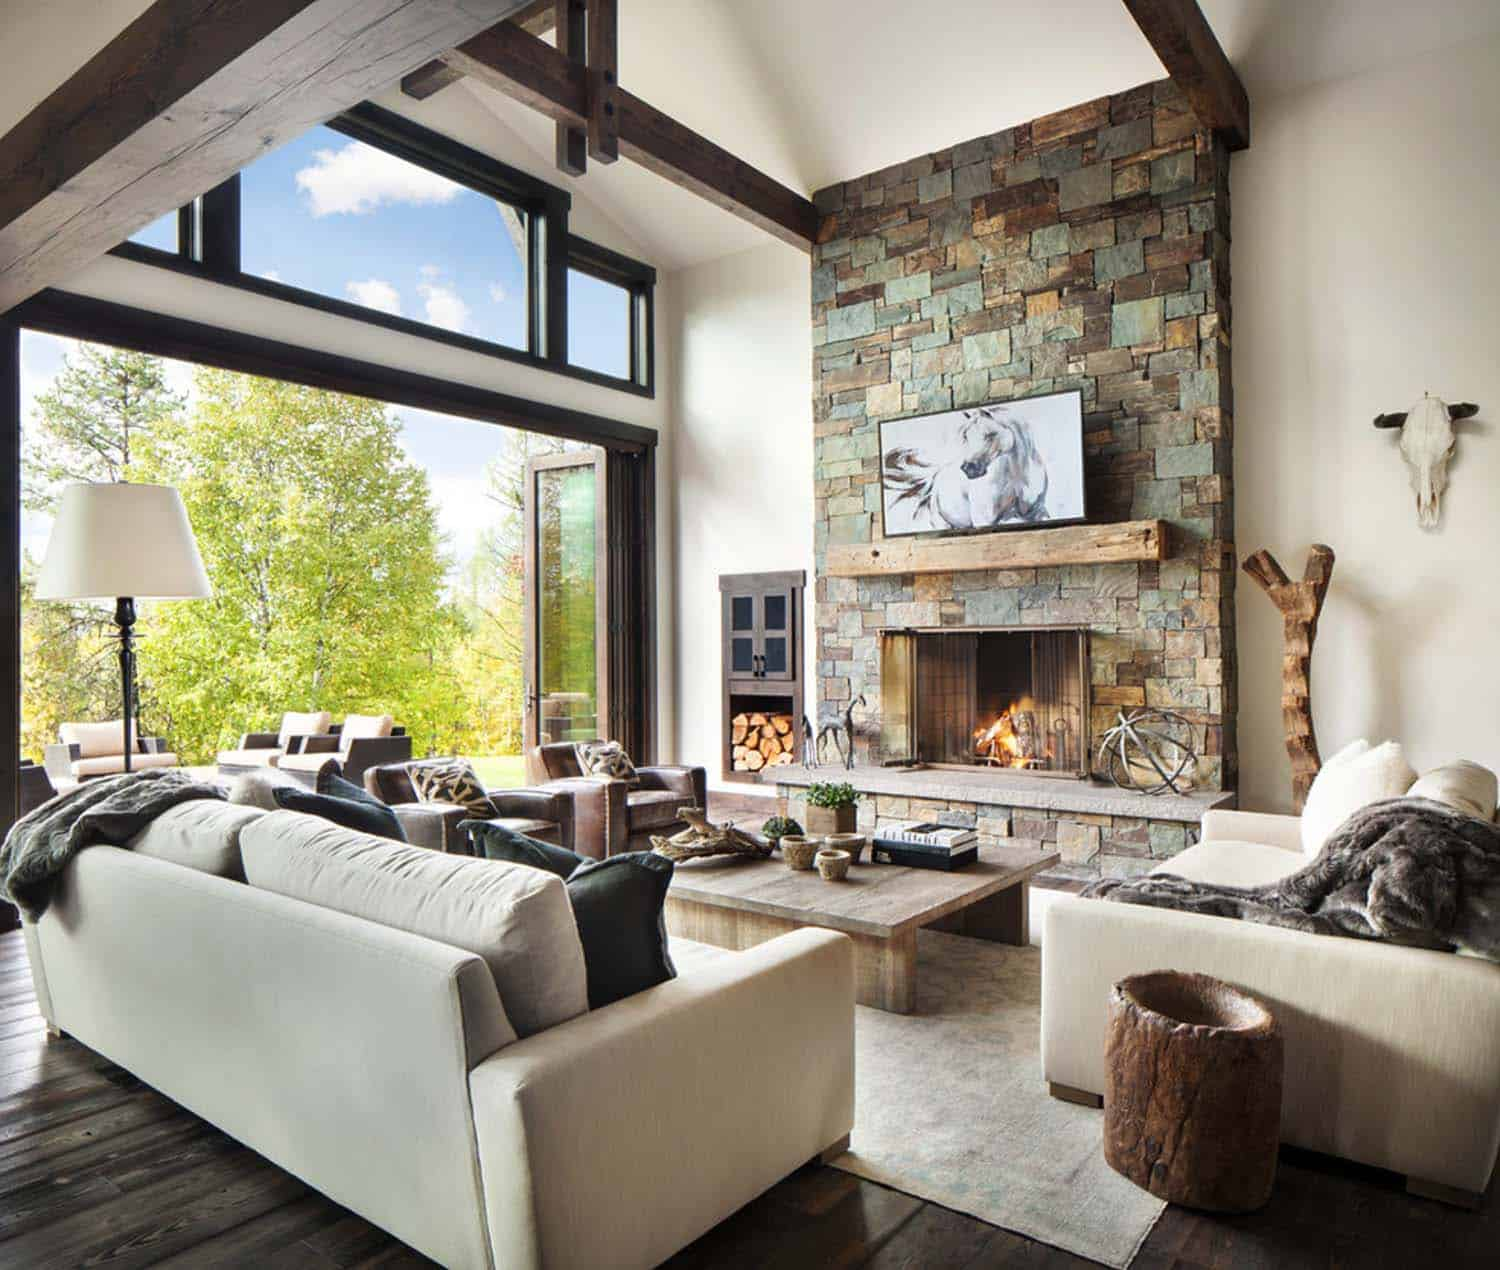 Home Interior Design Ideas For Small Spaces Modern: Rustic-modern Dwelling Nestled In The Northern Rocky Mountains